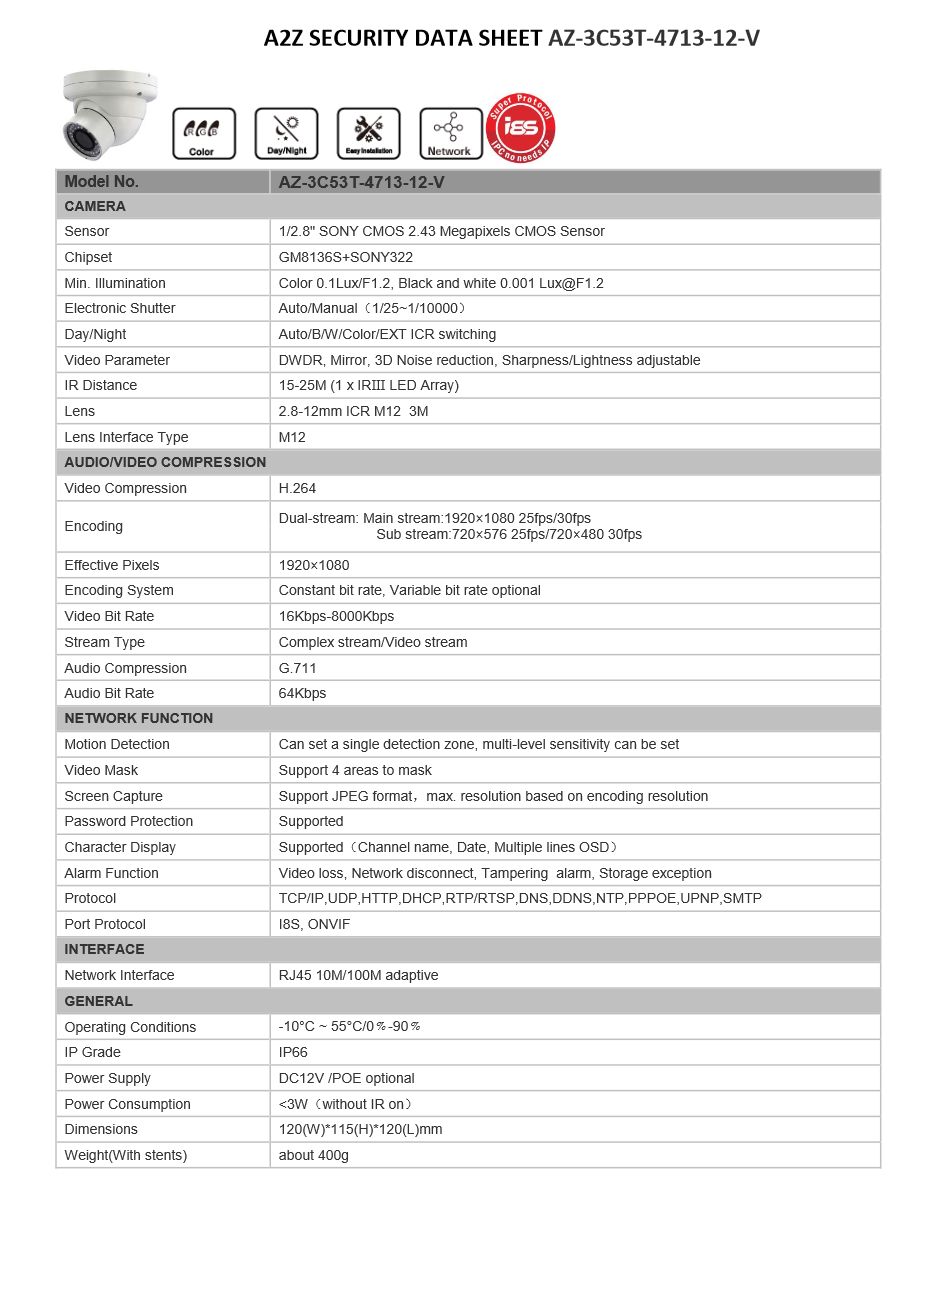 A2Z Fire and Security Essex installers AZ-3C53T-4713-12V data sheet